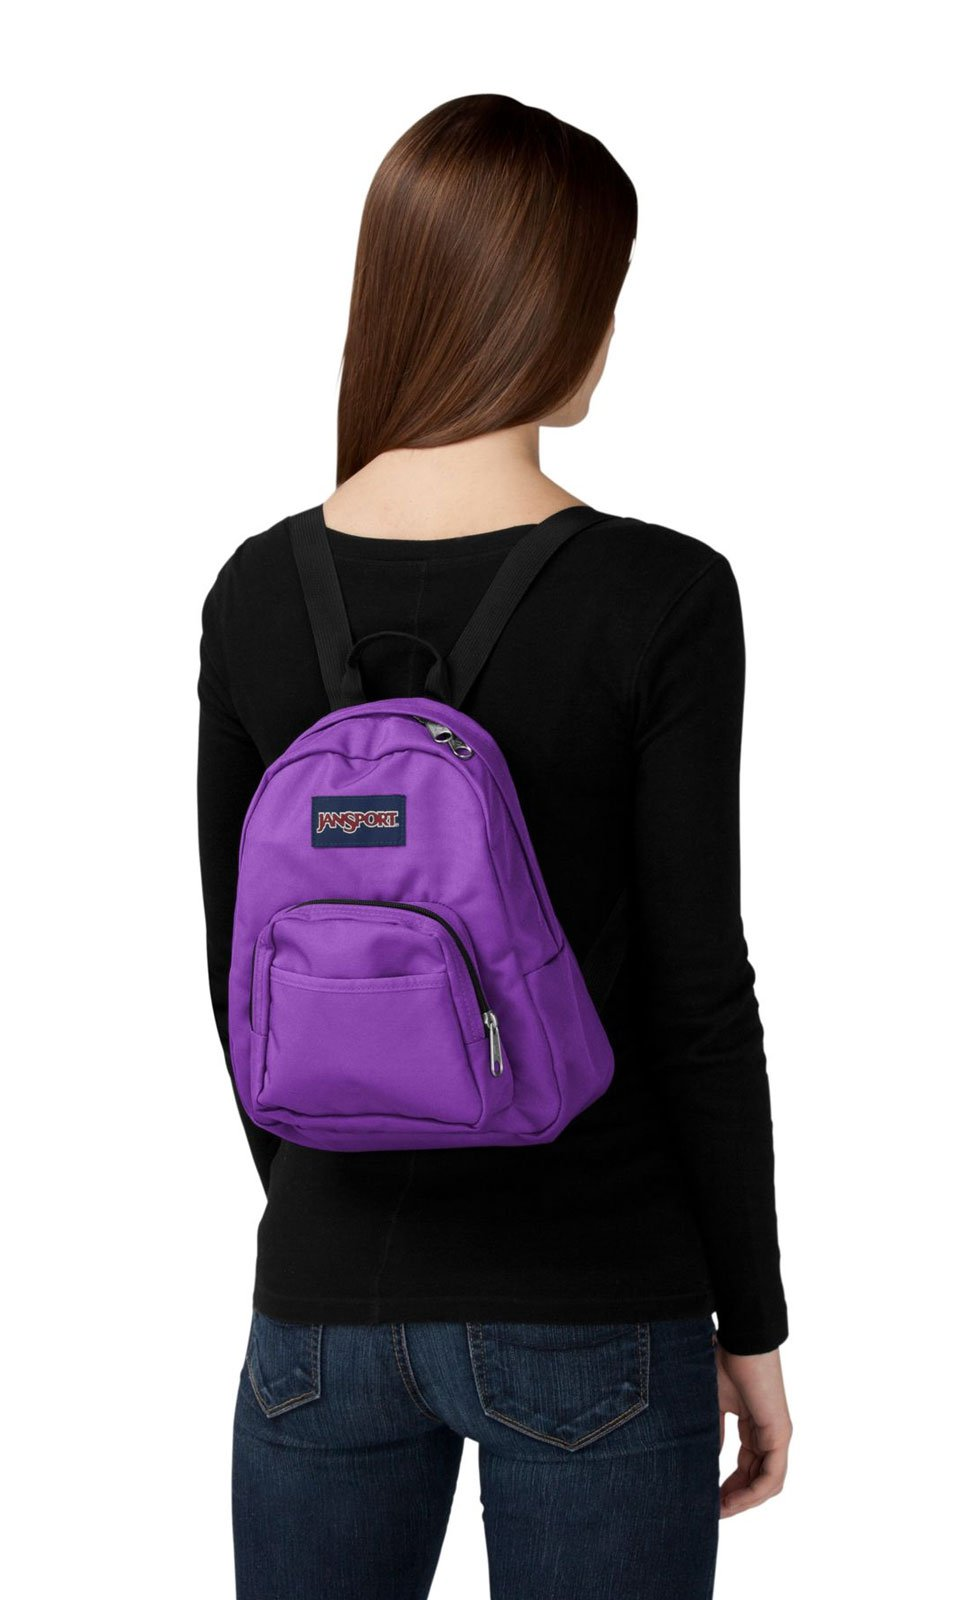 Jansport Mini Backpack Walmart | Court Appointed Receiver